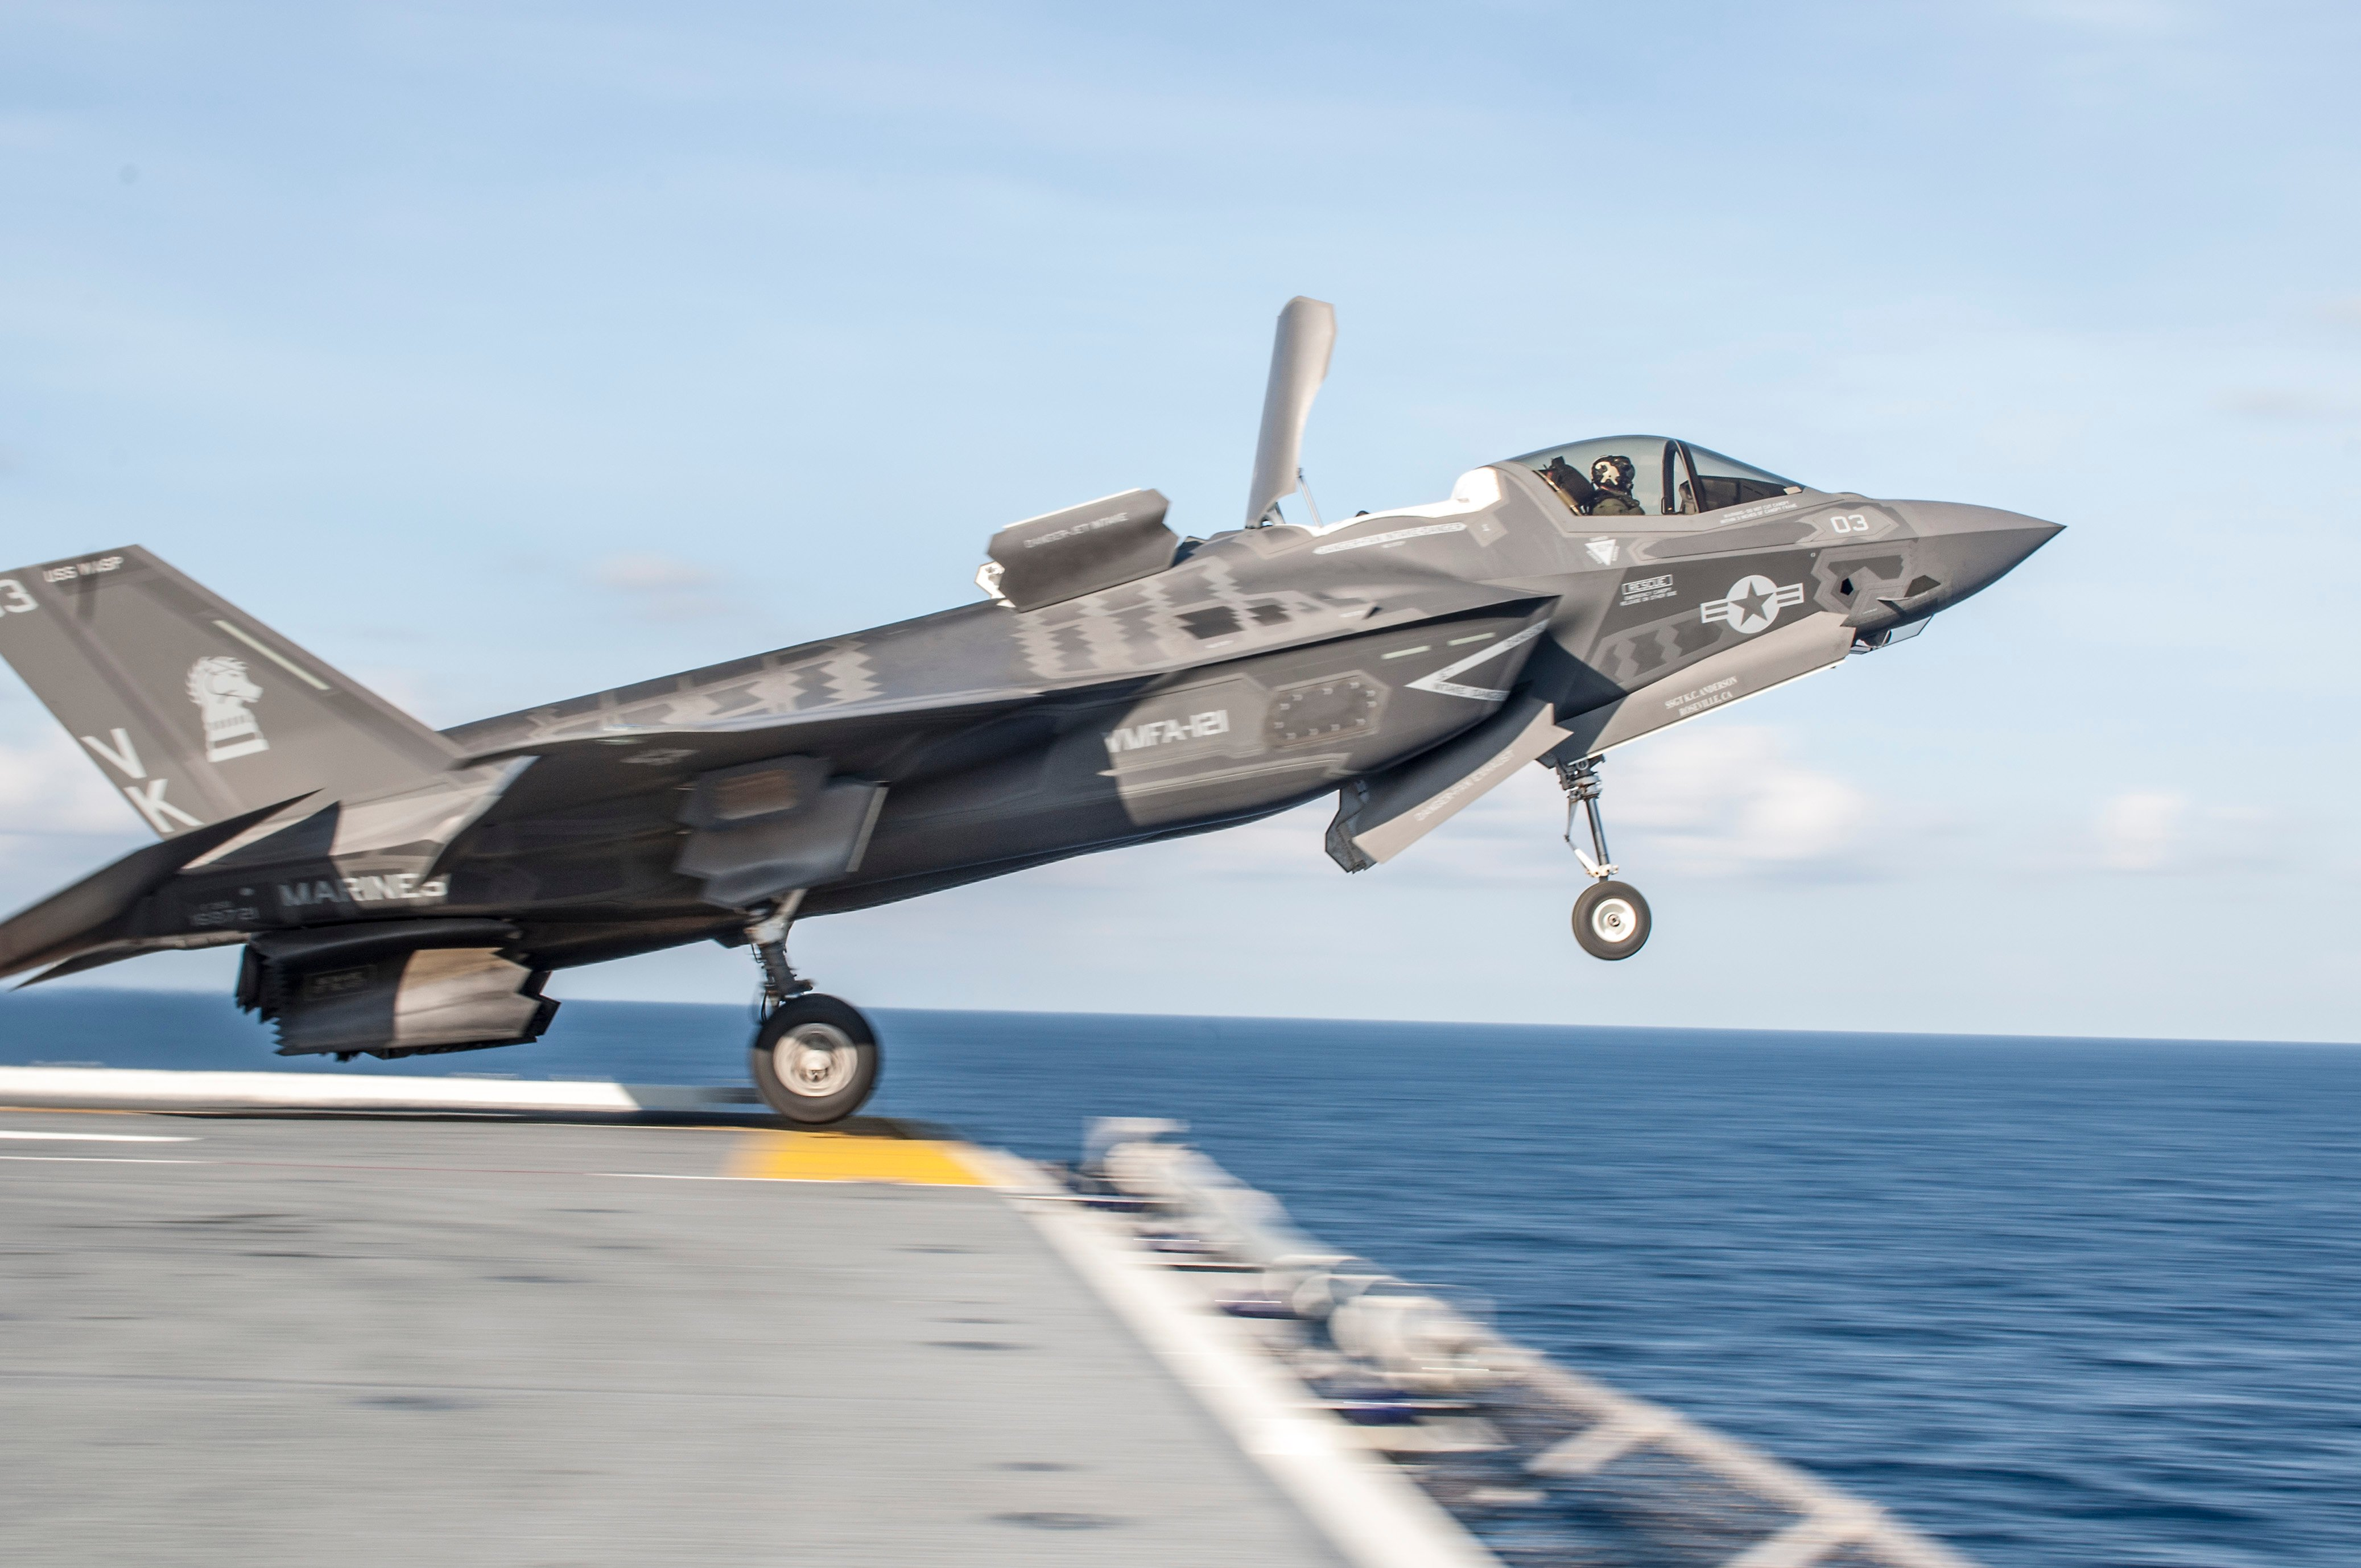 An F-35B Lightning II takes off from the flight deck of the amphibious assault ship USS Wasp (LHD-1) on May 25, 2015. US Navy Photo